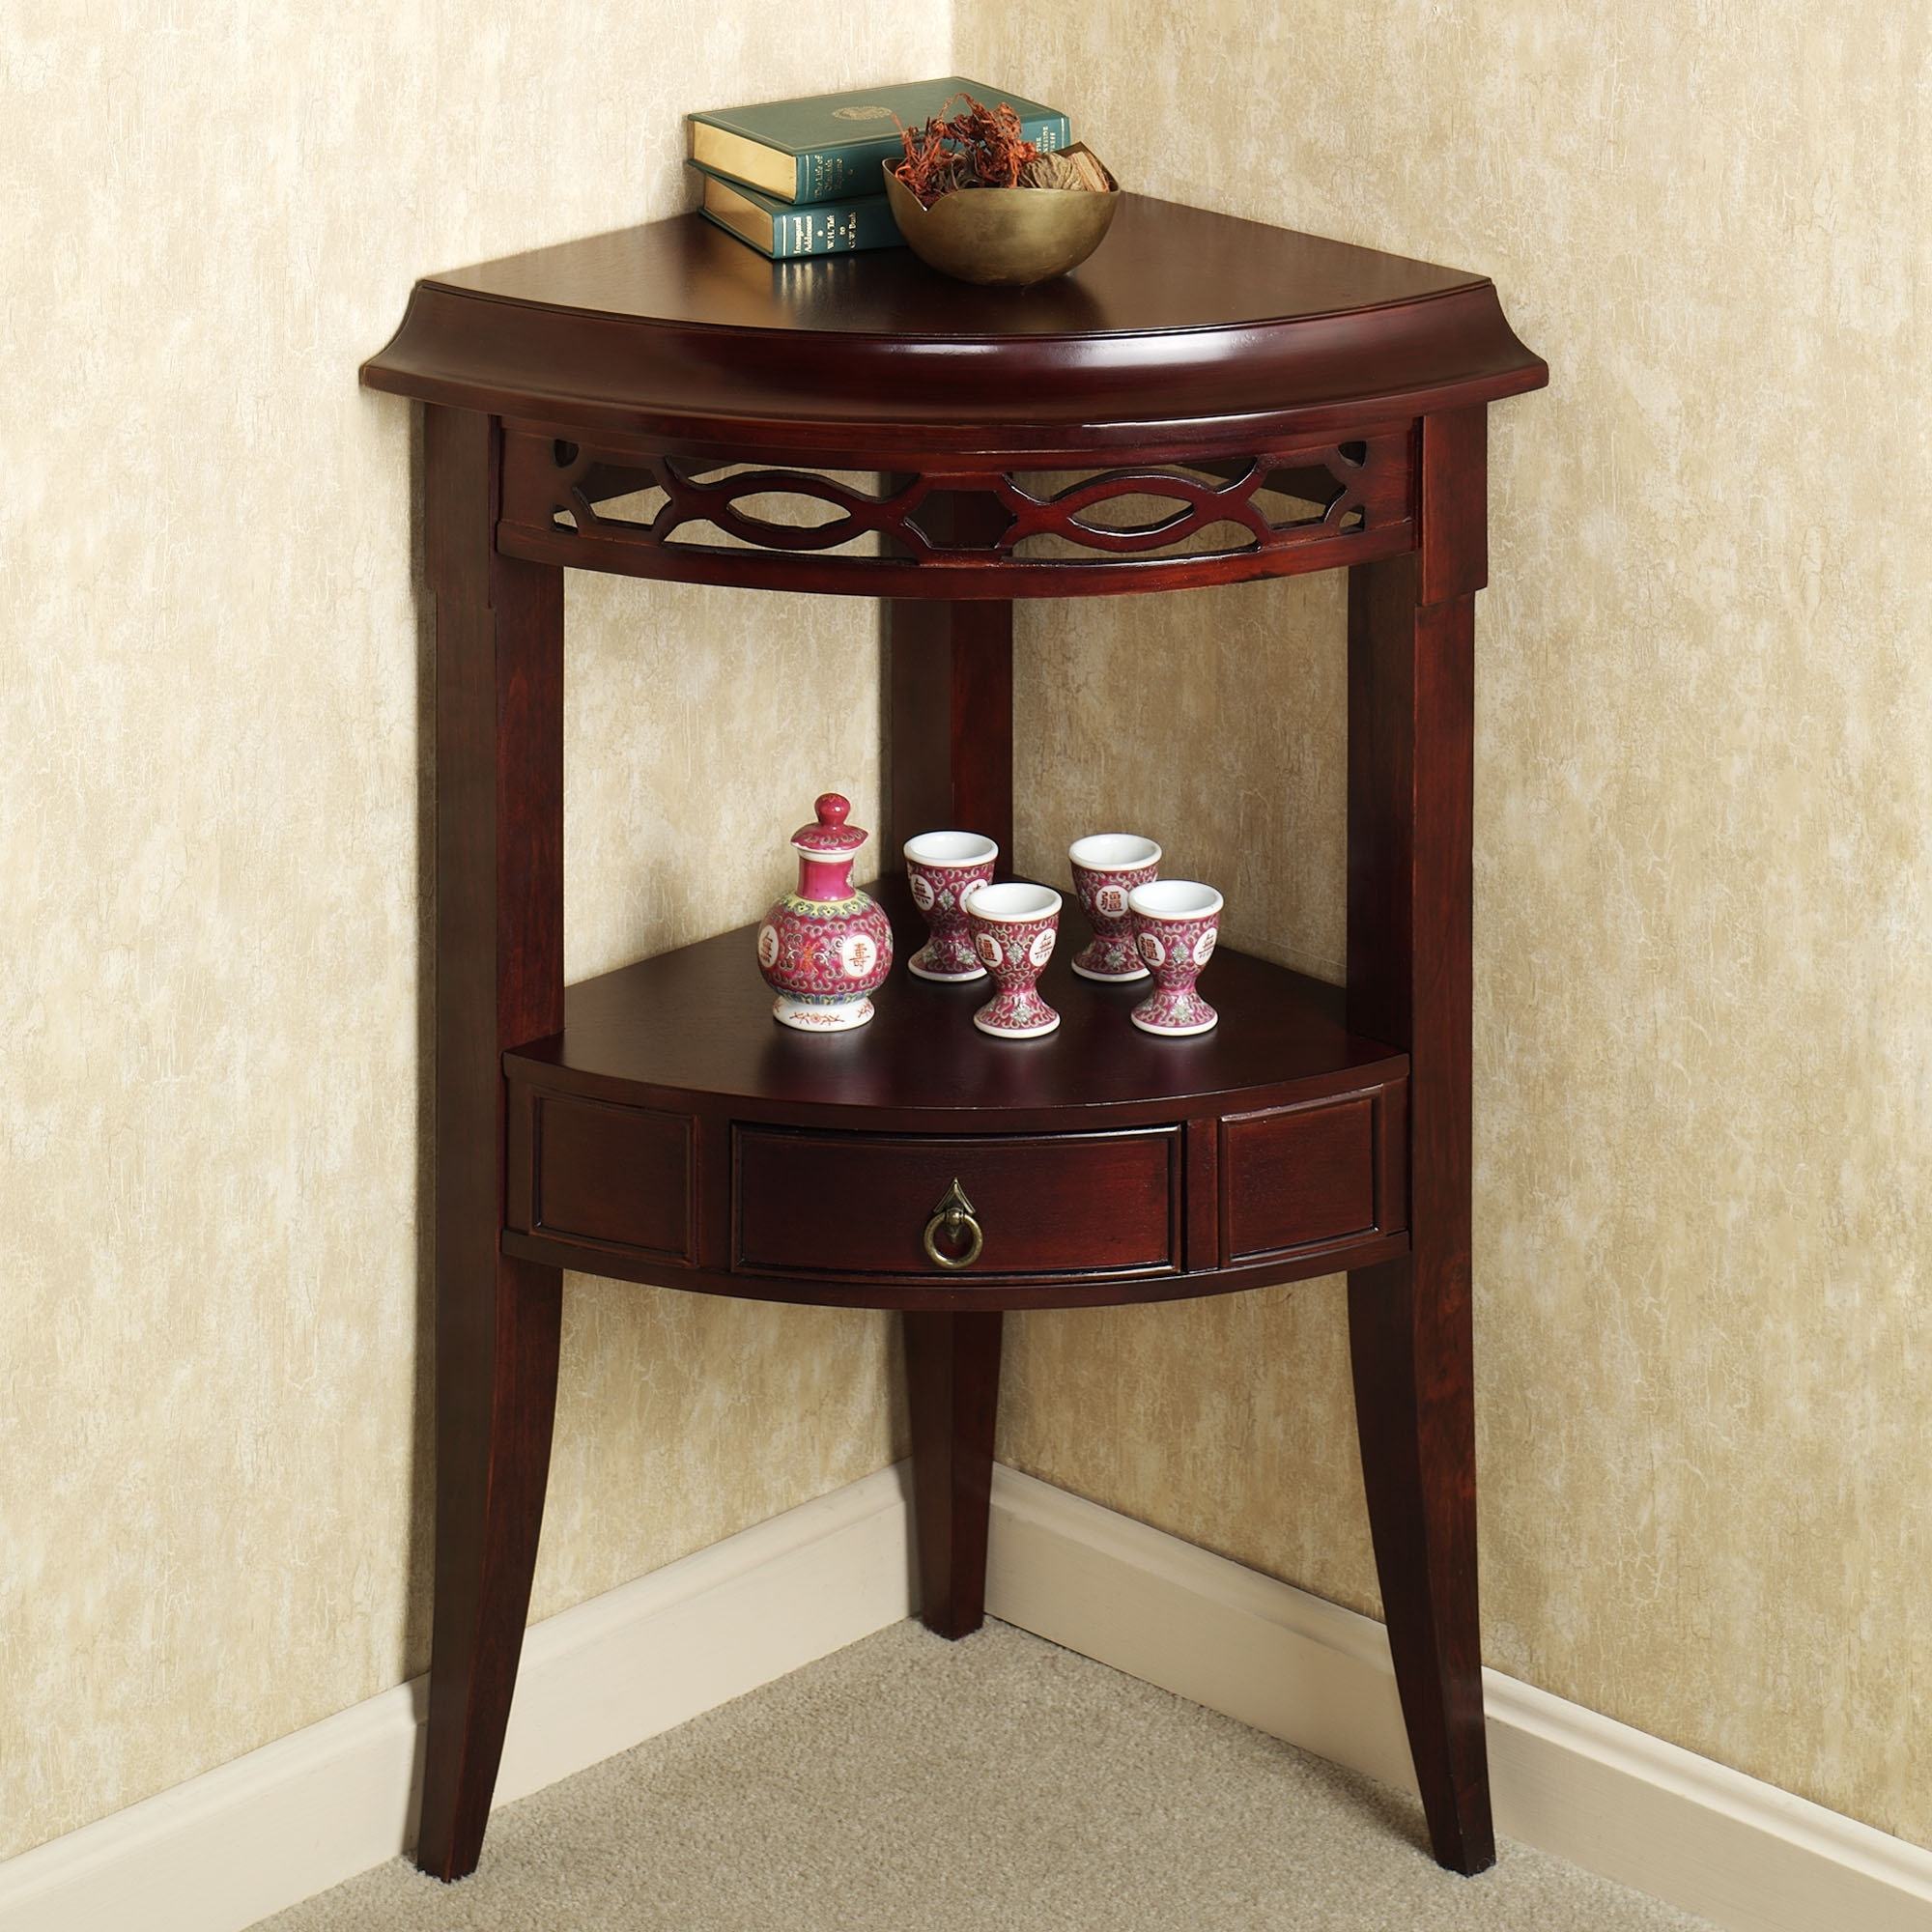 nice and clean look corner accent table the home redesign various options for design furniture with small entryway chair outdoor winnipeg ice bucket mudroom storage units tiffany